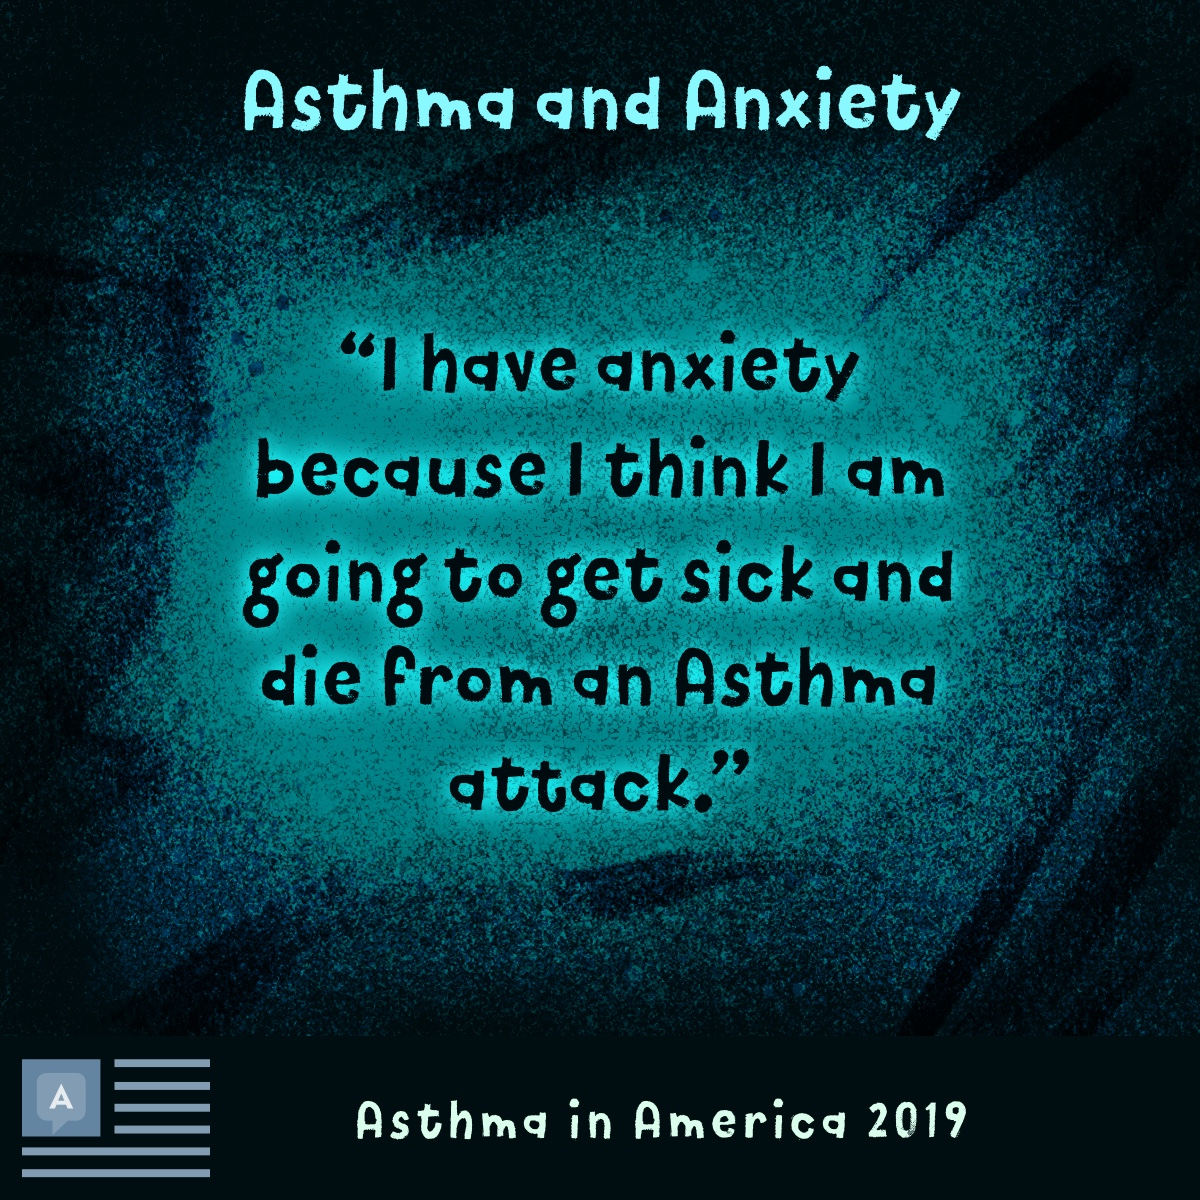 Quote I have anxiety because I think I am going to get sick and die from an asthma attack